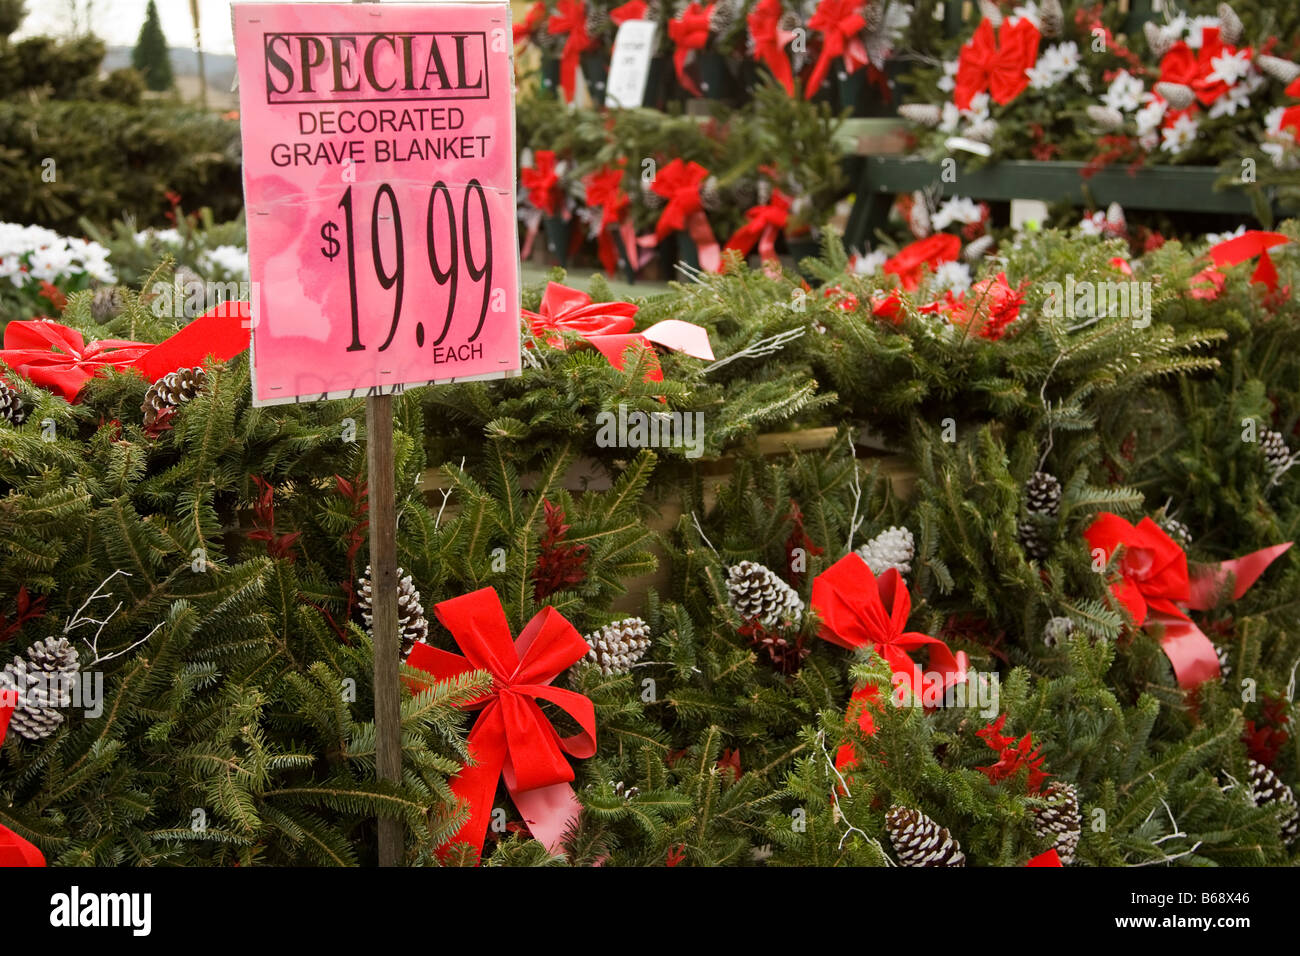 christmas grave blankets for sale stock photo 21094422 alamy